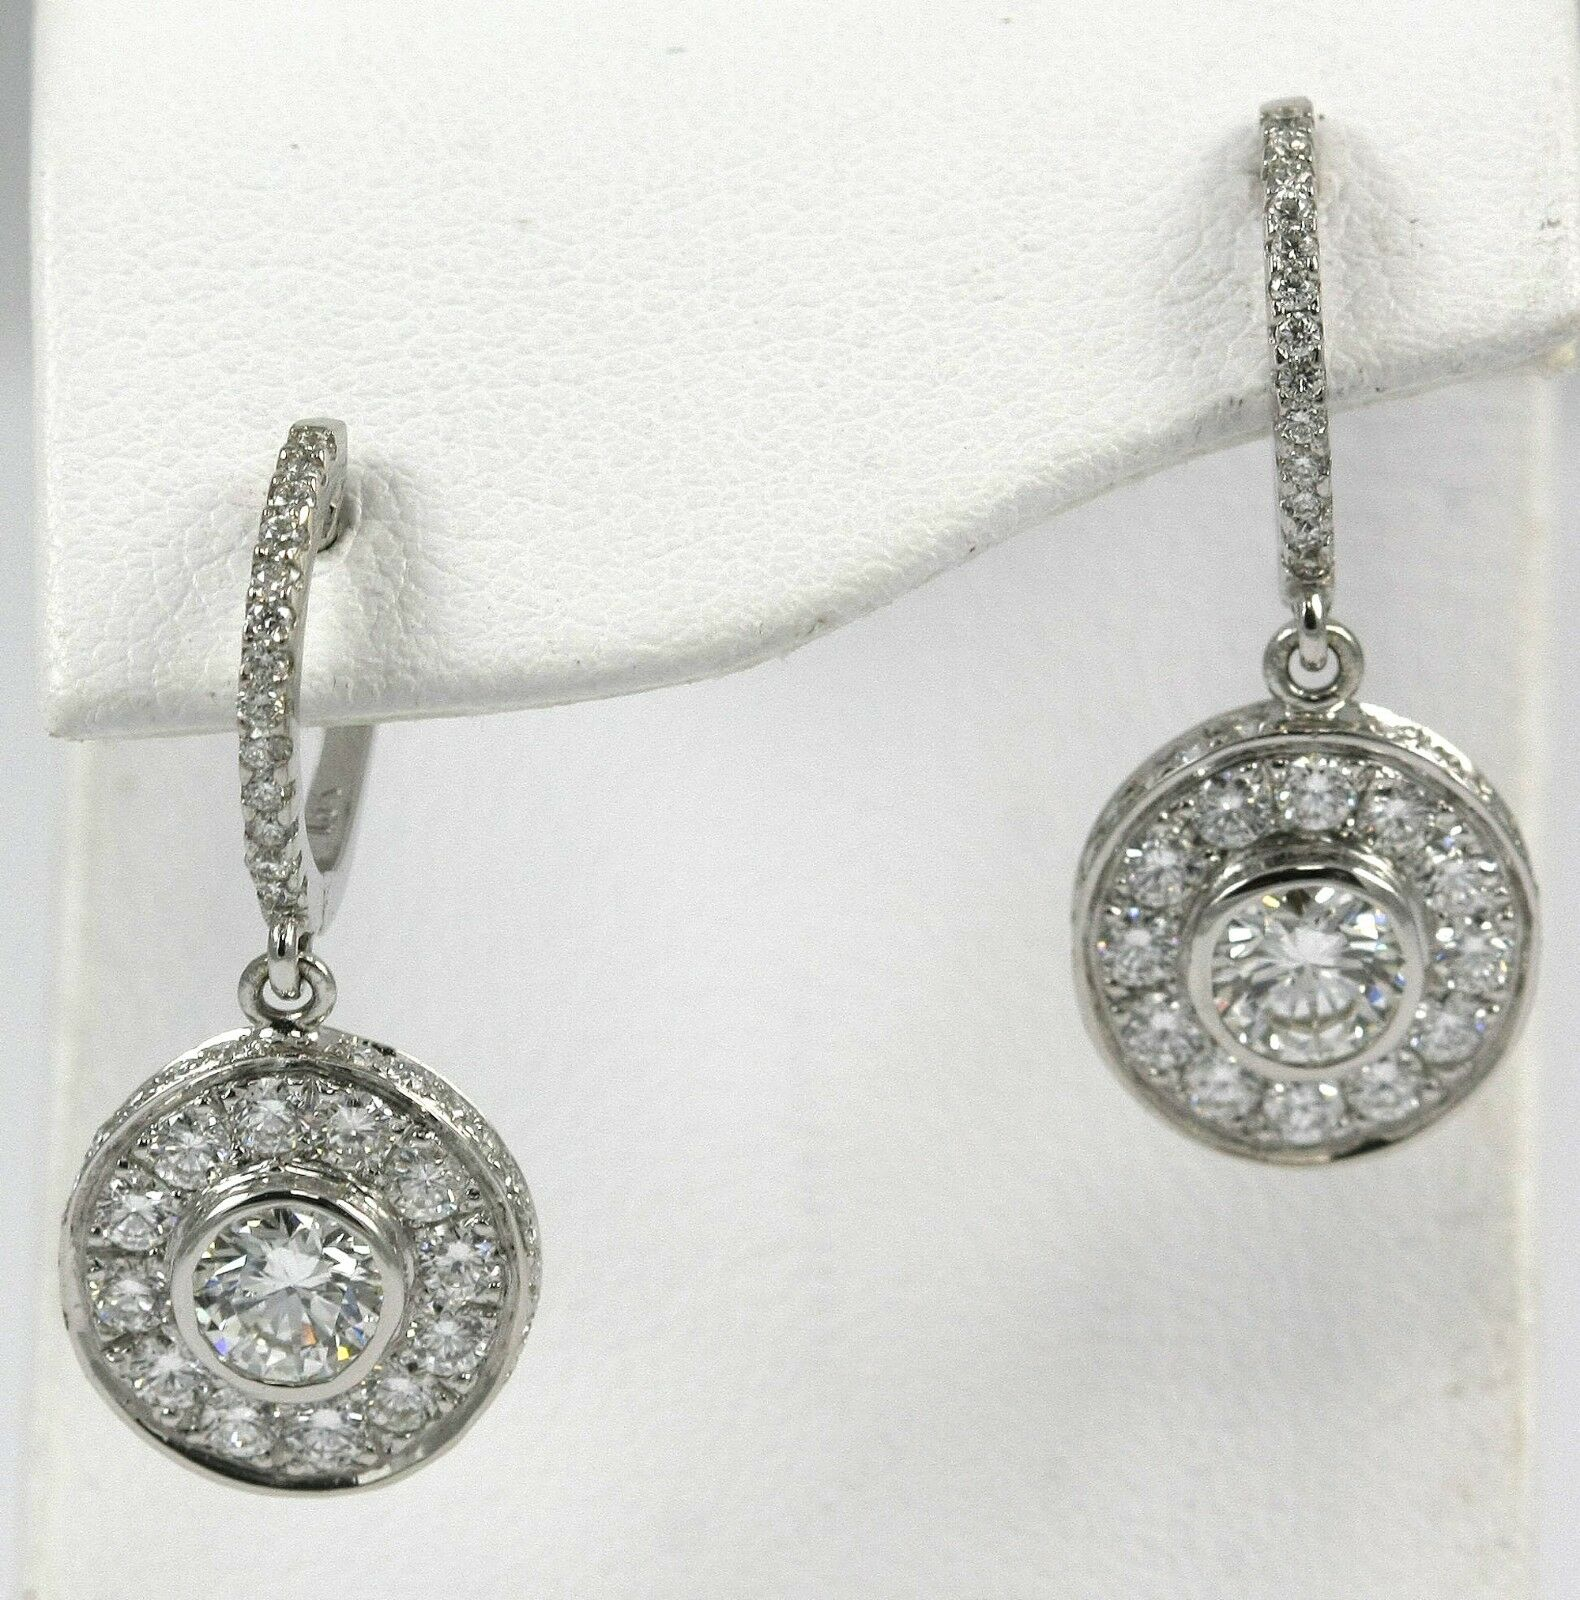 Diamond Earrings 14k WG with 2.22 carat Diamonds  Sold Out  Available in 3 weeks